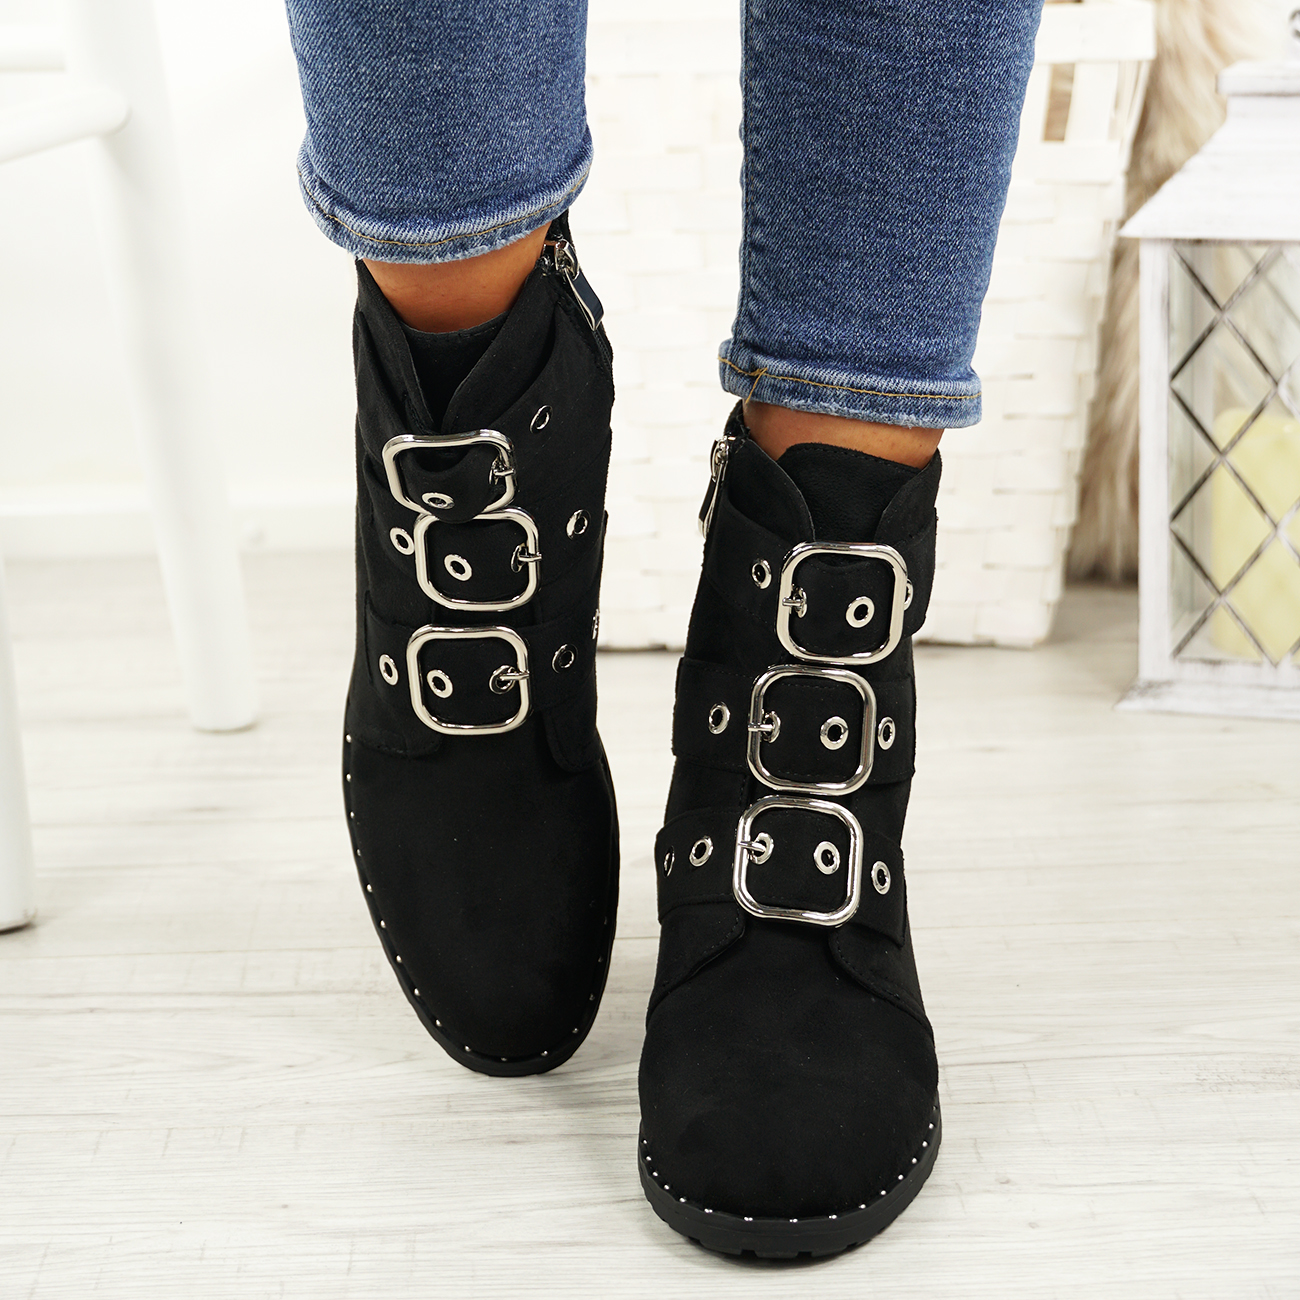 LADIES-WOMENS-BIKER-ANKLE-BOOTS-ZIP-STUDDED-LOW-HEEL-COMFY-SHOES-SIZES thumbnail 15